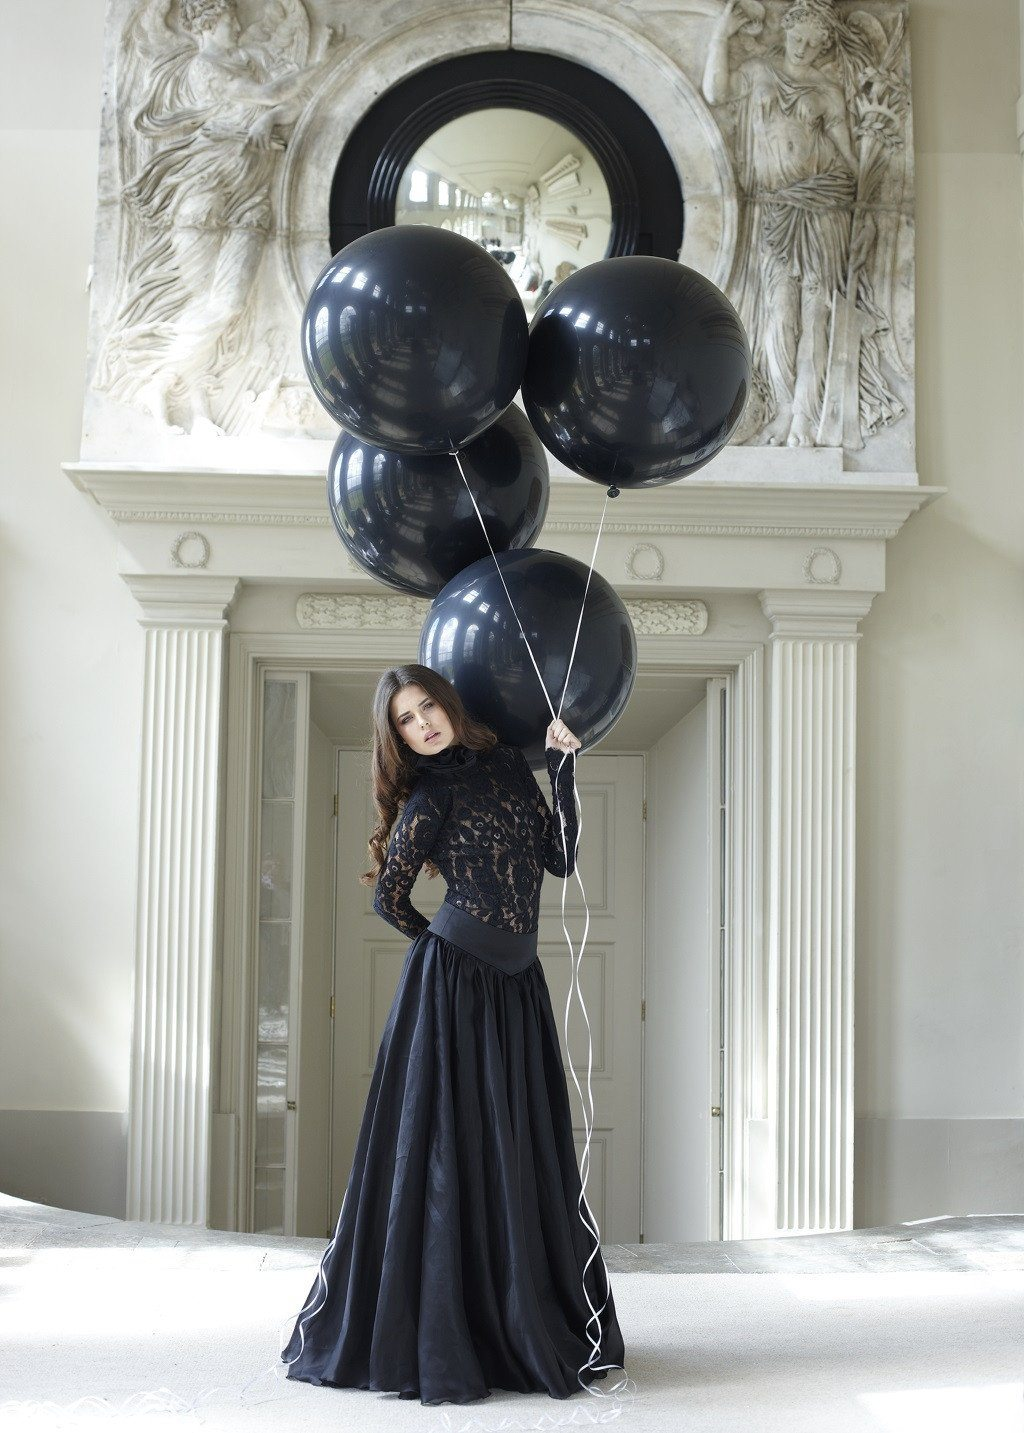 Black balloons by John Swannell - 2012 - A Modern Grand Tour